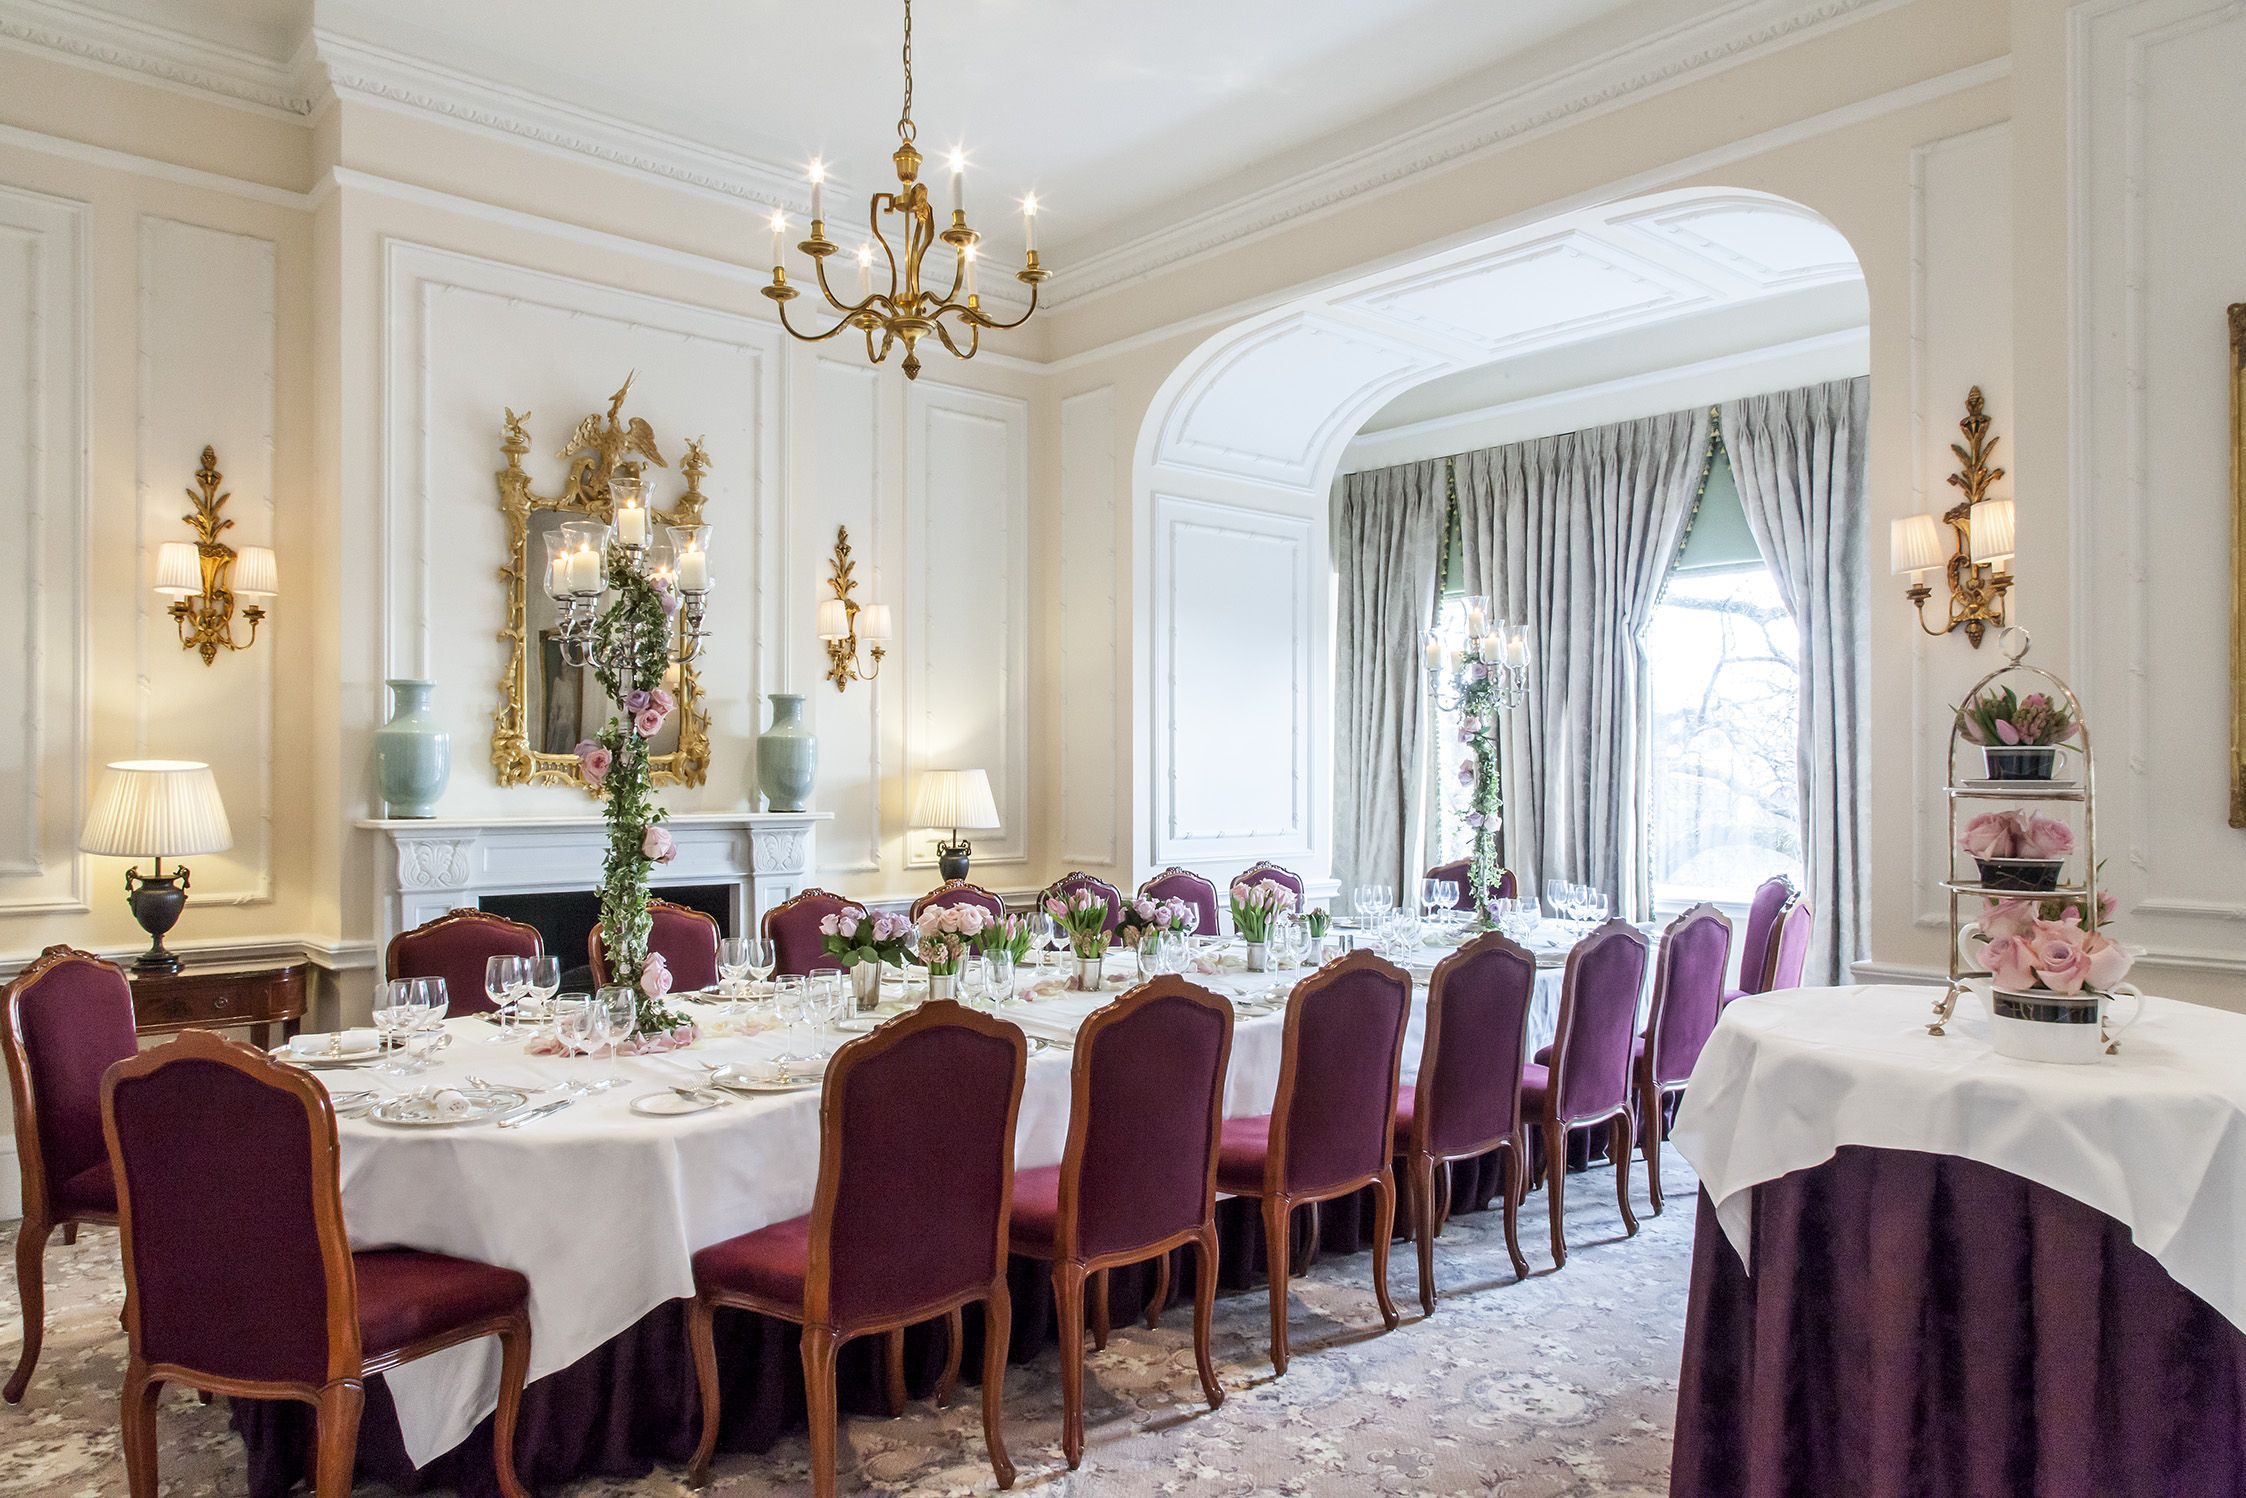 small wedding hotels london%0A Meeting Room at   star hotel  The Savoy Hotel  This hotel u    s address is   Strand West End Soho London and have     rooms